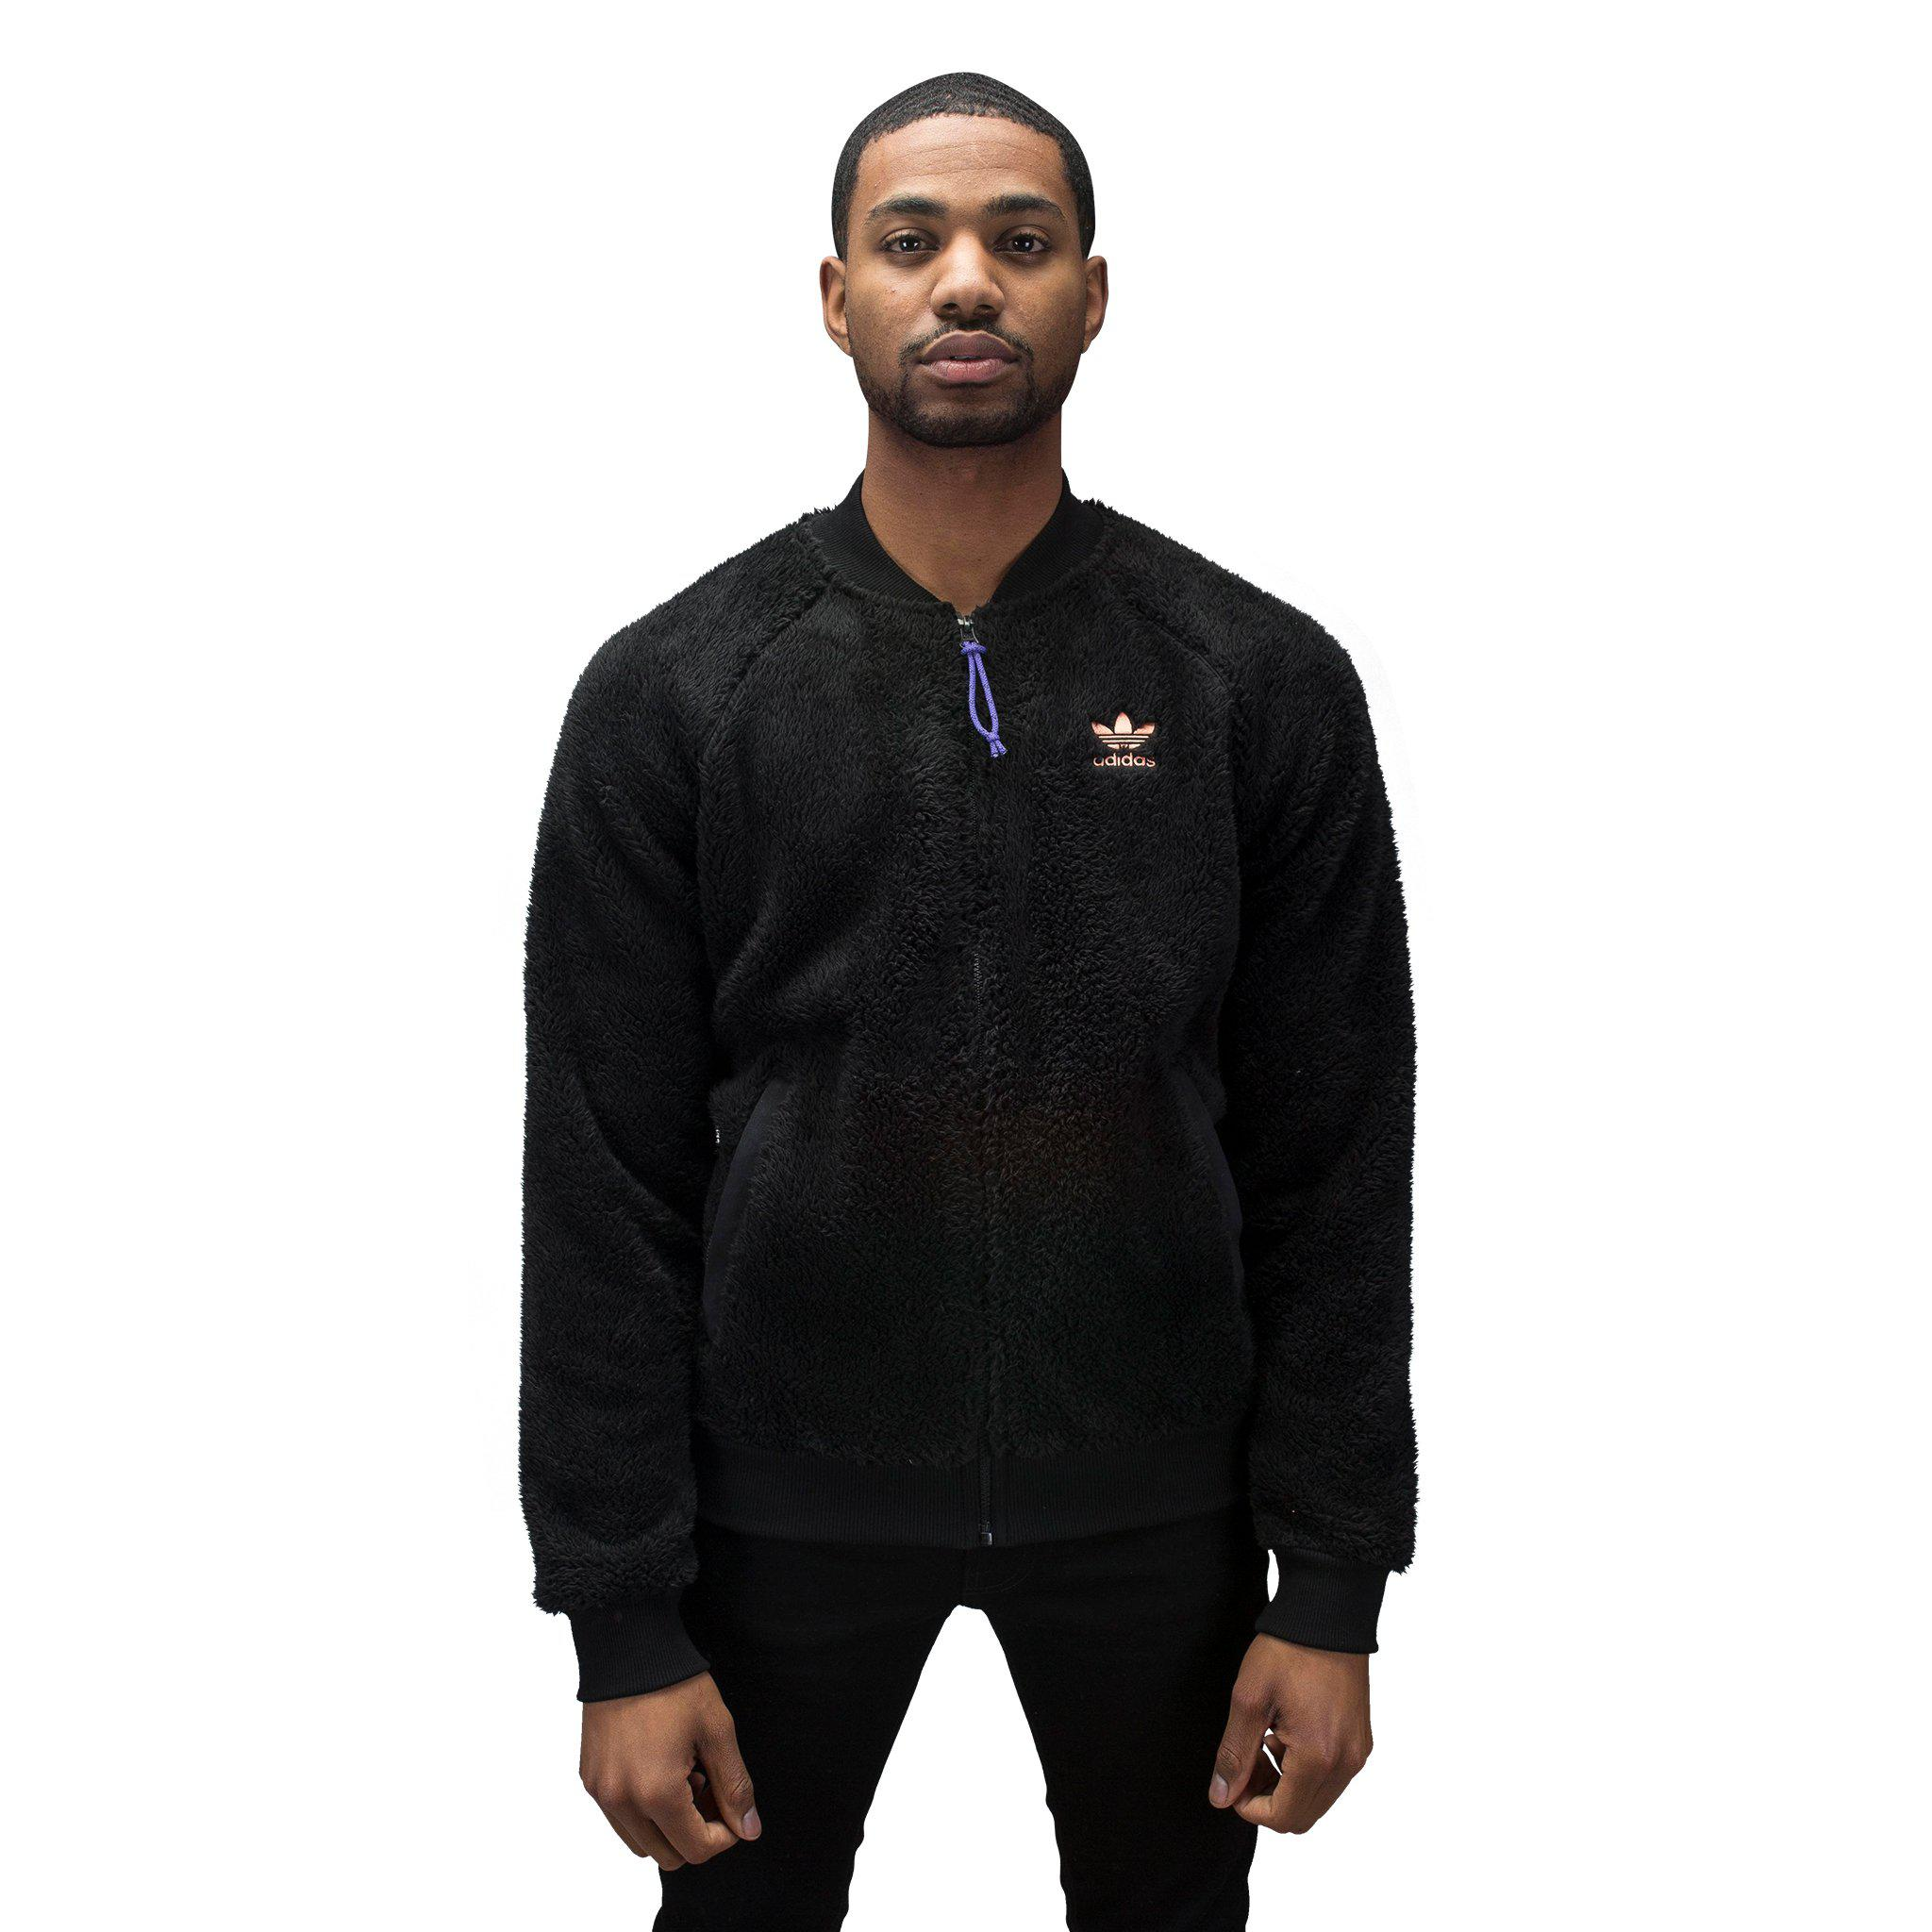 95082756bee26 Lyst - adidas Originals Hu Hiking Polar Track Top in Black for Men